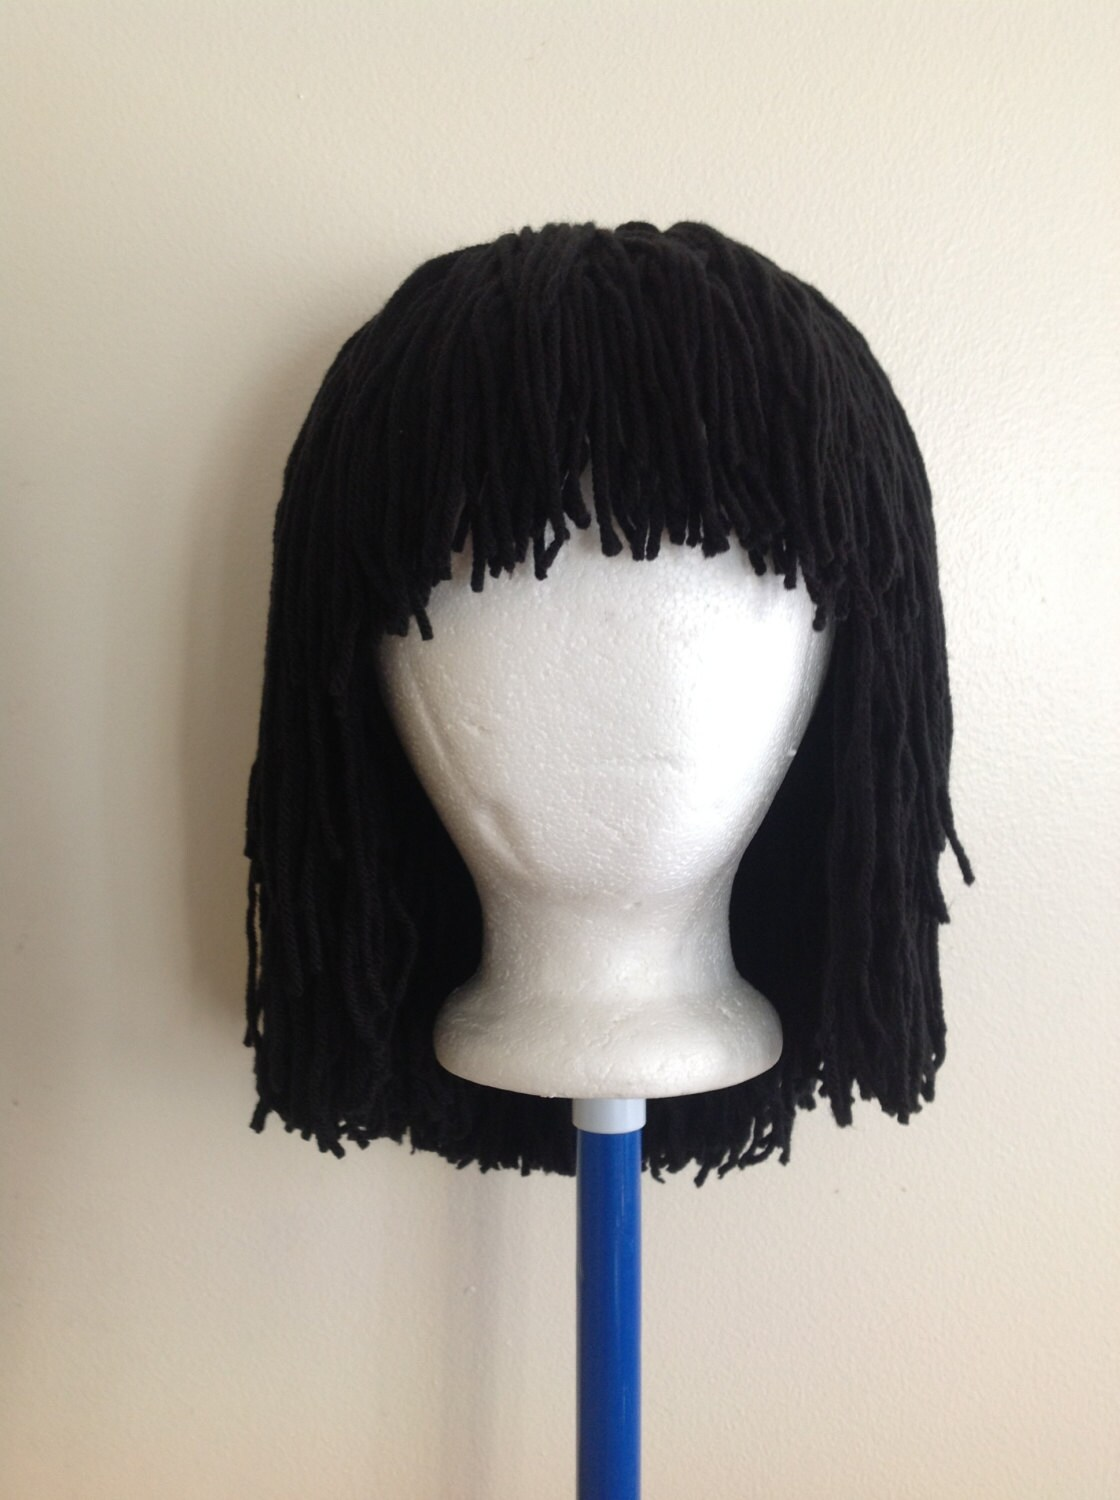 Crochet Hair Wig : Crochet yarn Hair wig, women, baby, kids, Black hair, yarn wig ...